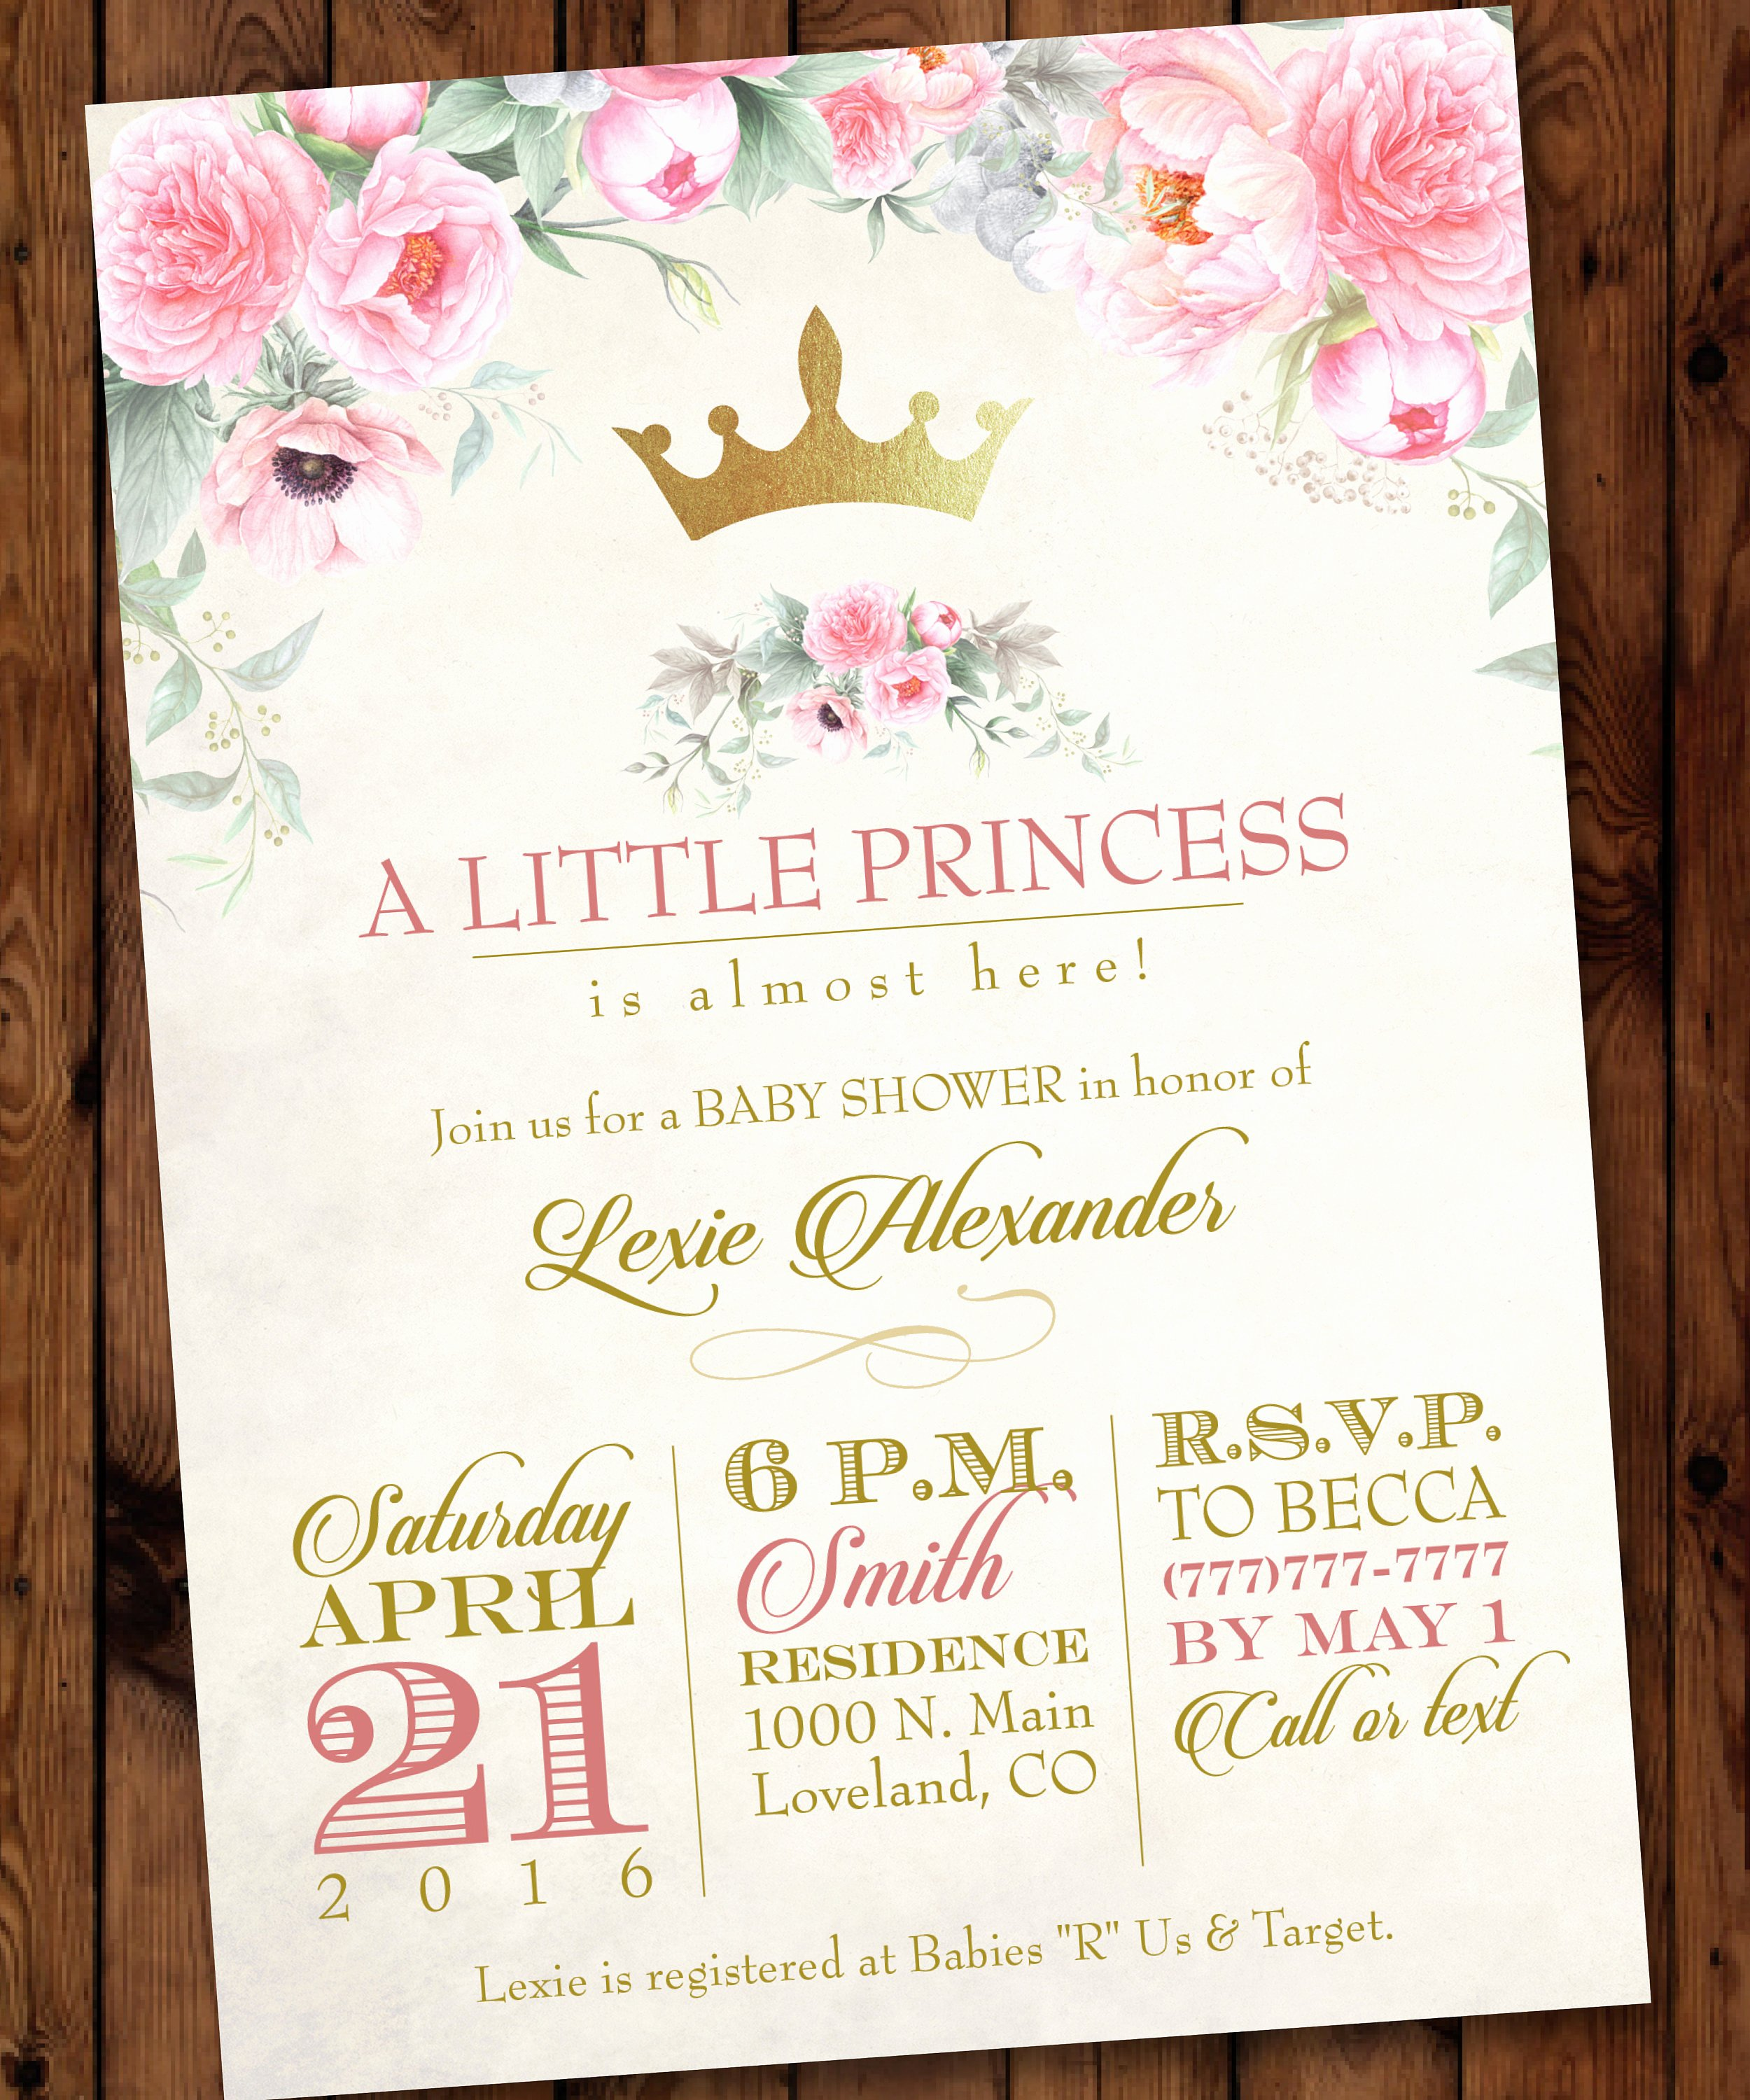 Princess Baby Shower Invitations New Princess Baby Shower Invitation Pink Princess Baby